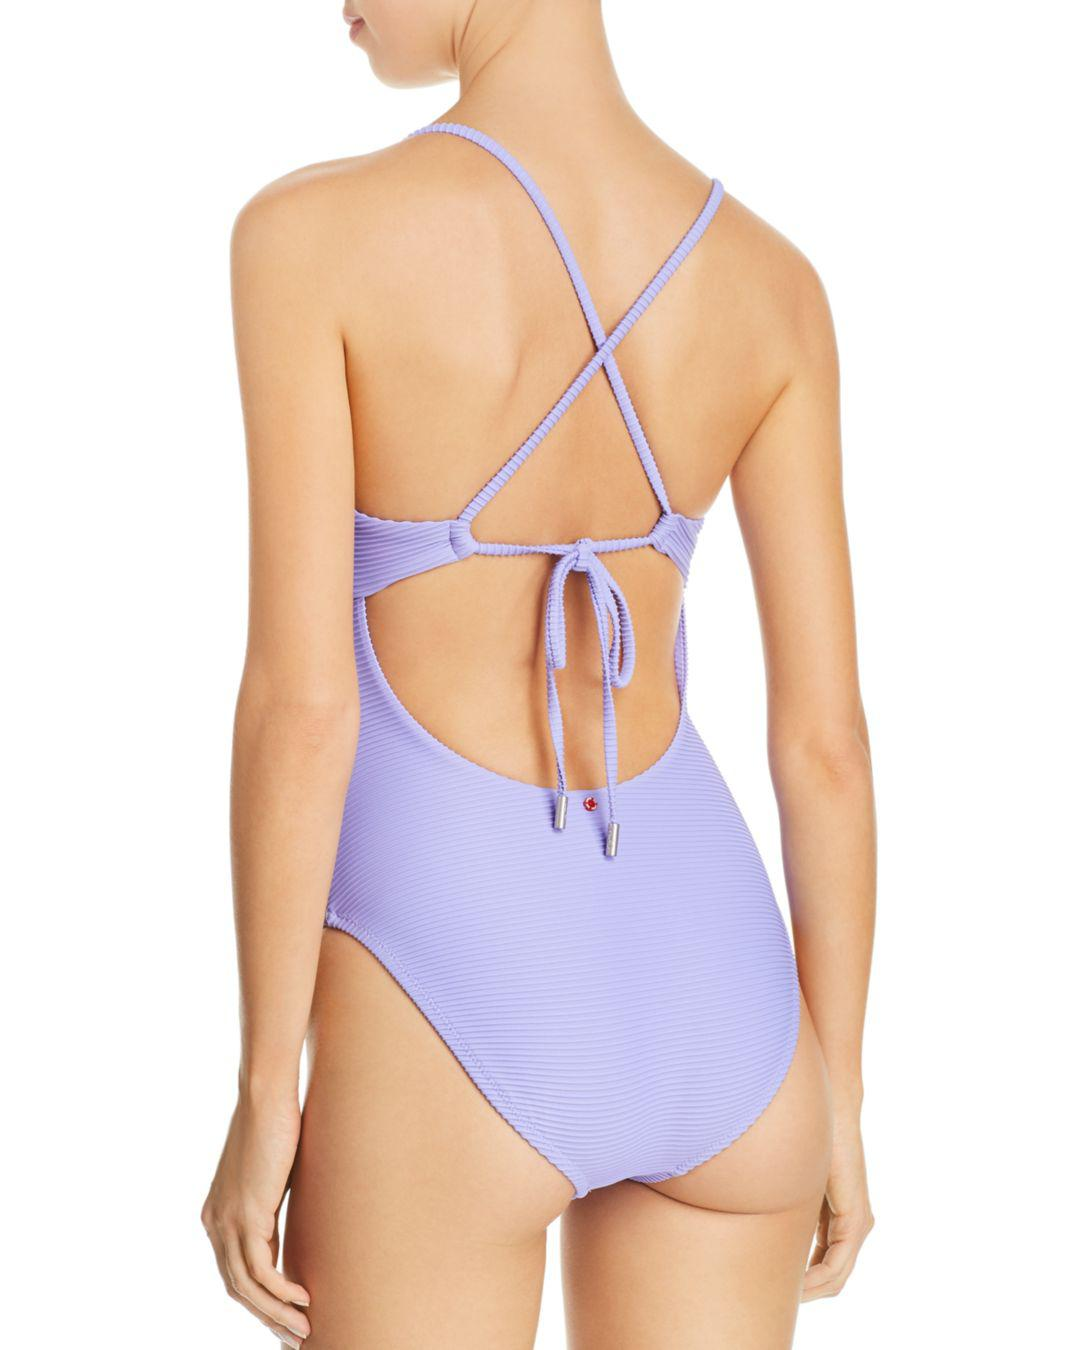 ca4ff9e37ecd9 Red Carter Ribbed Plunge One Piece Swimsuit in Purple - Lyst